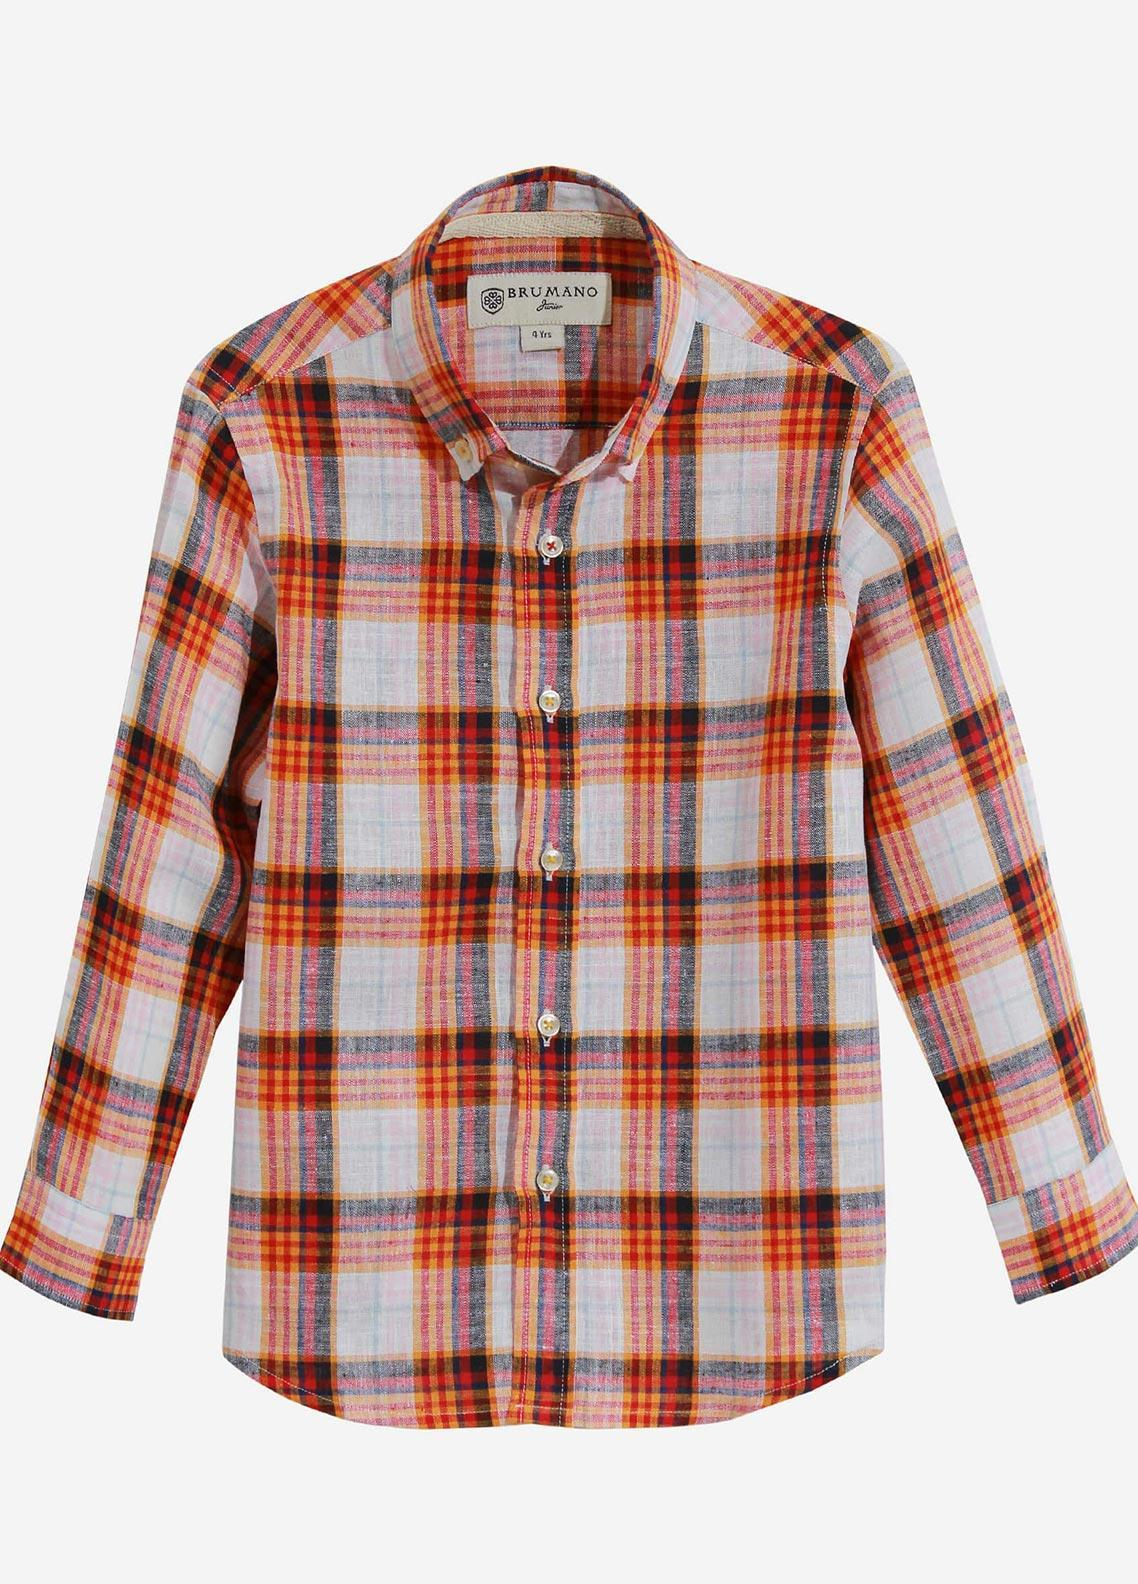 Brumano Cotton Casual Shirts for Boys -  BRM-1007